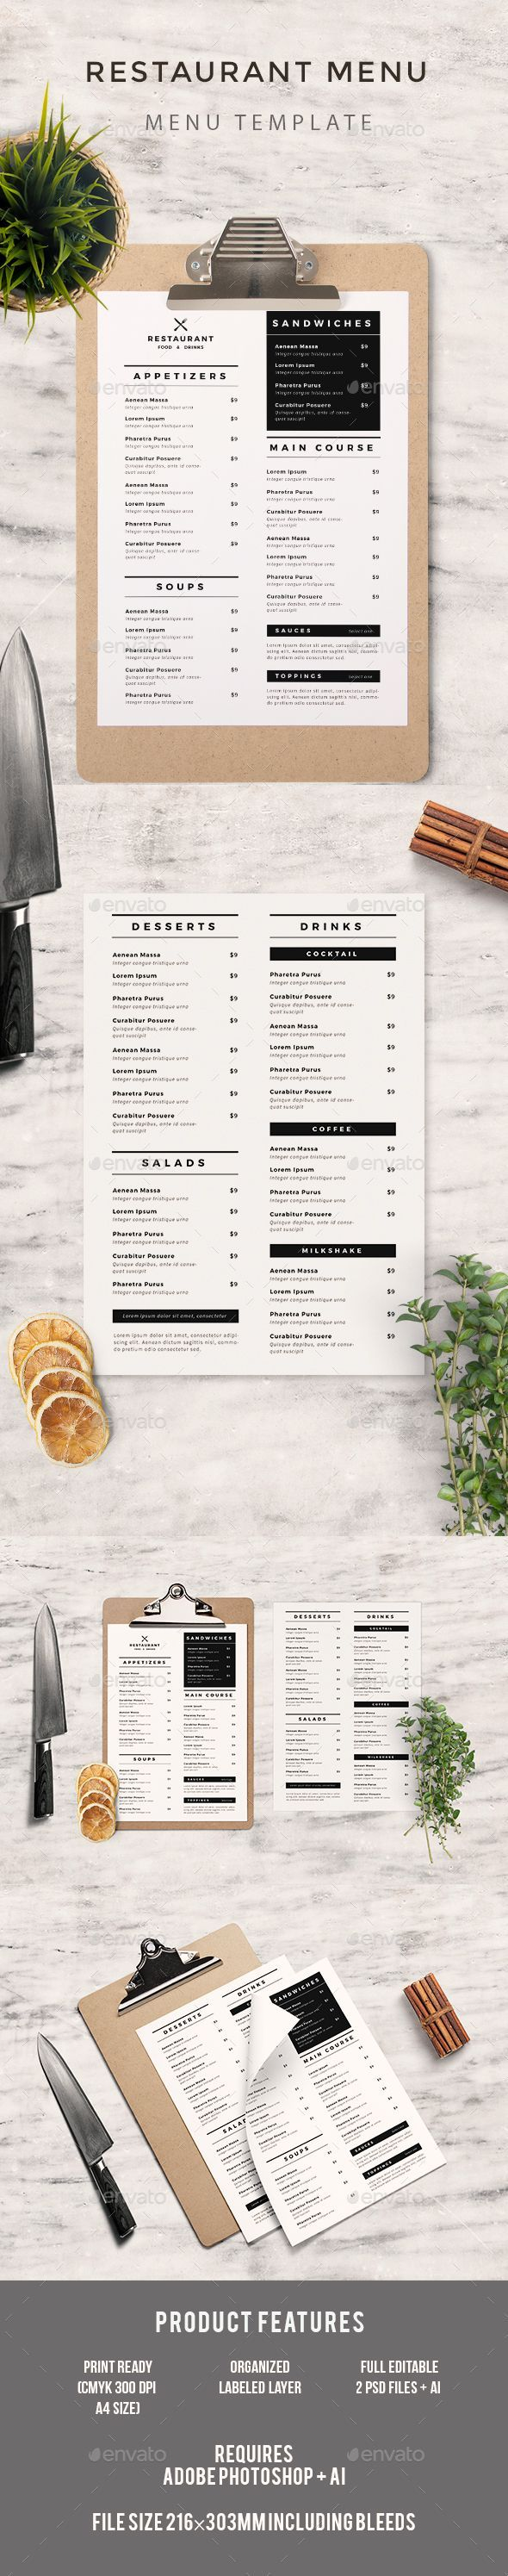 Simple Food Menu — Photoshop PSD #cafe #restaurant menu • Available here → https://graphicriver.net/item/simple-food-menu/19803204?ref=pxcr